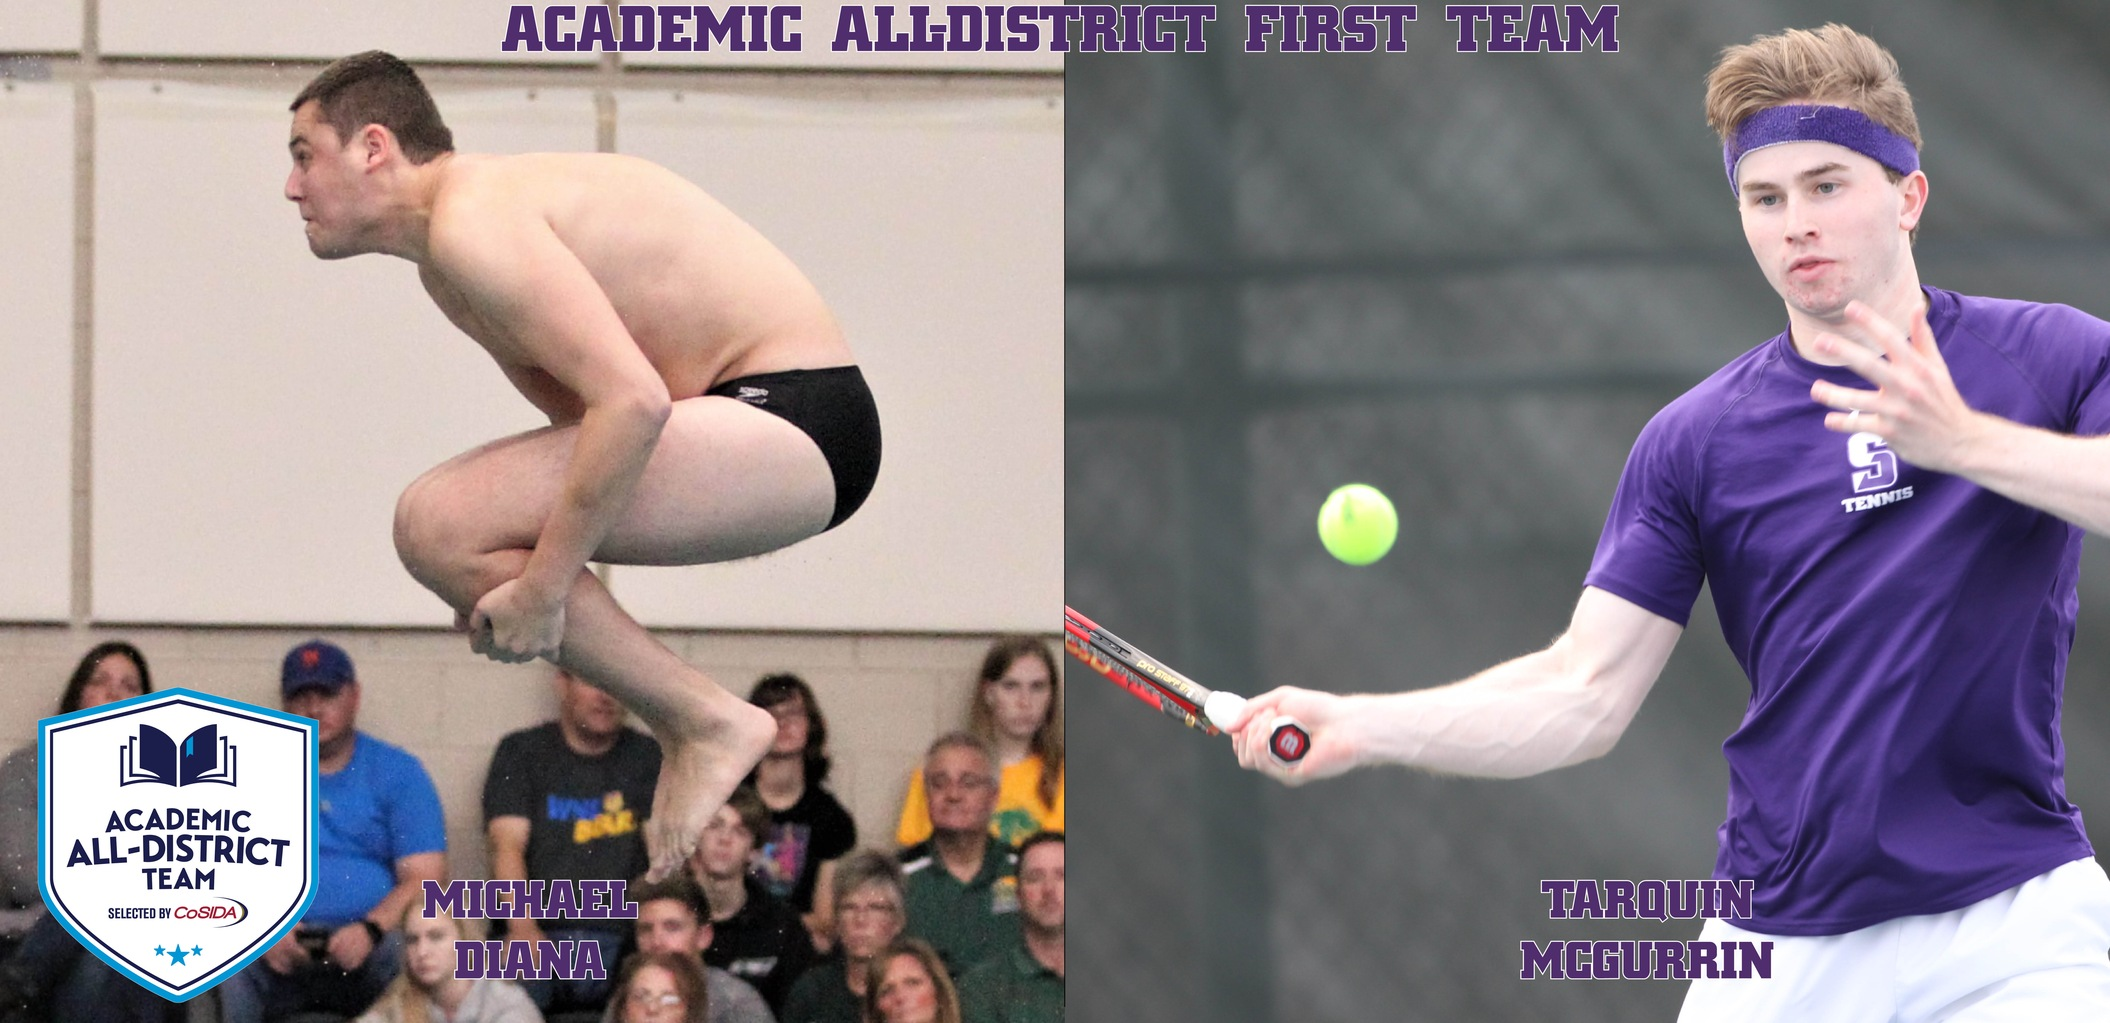 Senior Michael Diana of The University of Scranton men's swimming & diving team and junior Tarquin McGurrin of the men's tennis team earned CoSIDA Academic All-District First Team honors on Thursday.